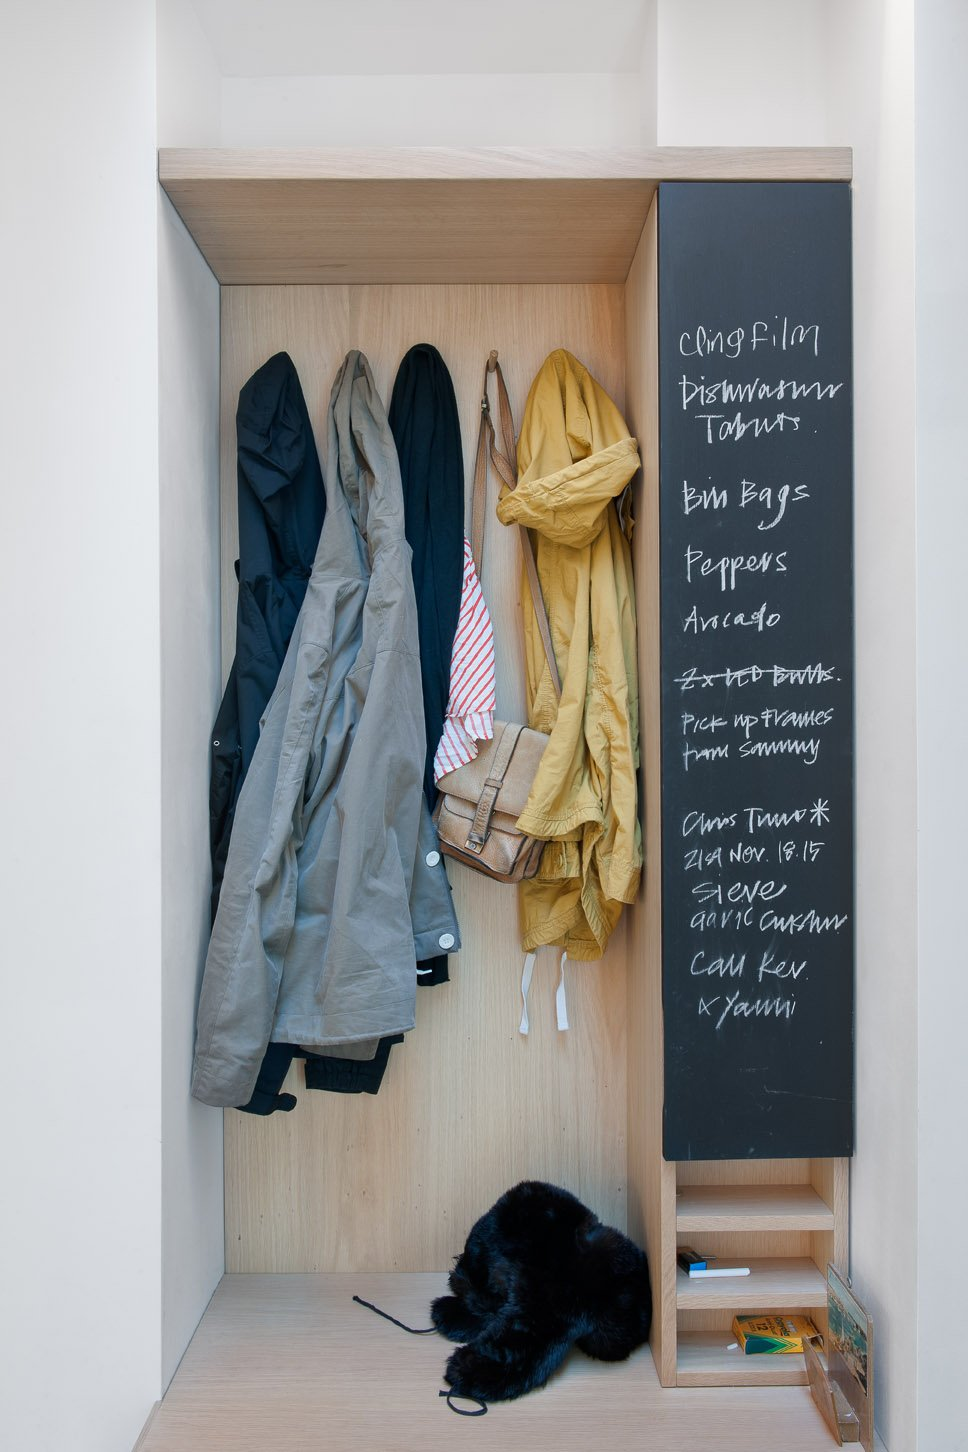 Storage Room and Closet Storage Type A built-in closet and chalkboard surface in the entry keeps things tidy and the couple's to-do list in order.  Surprising Clothing Storage Solutions by Jaime Gillin from An Obsessed Designer Fills Her Home with Vintage Finds